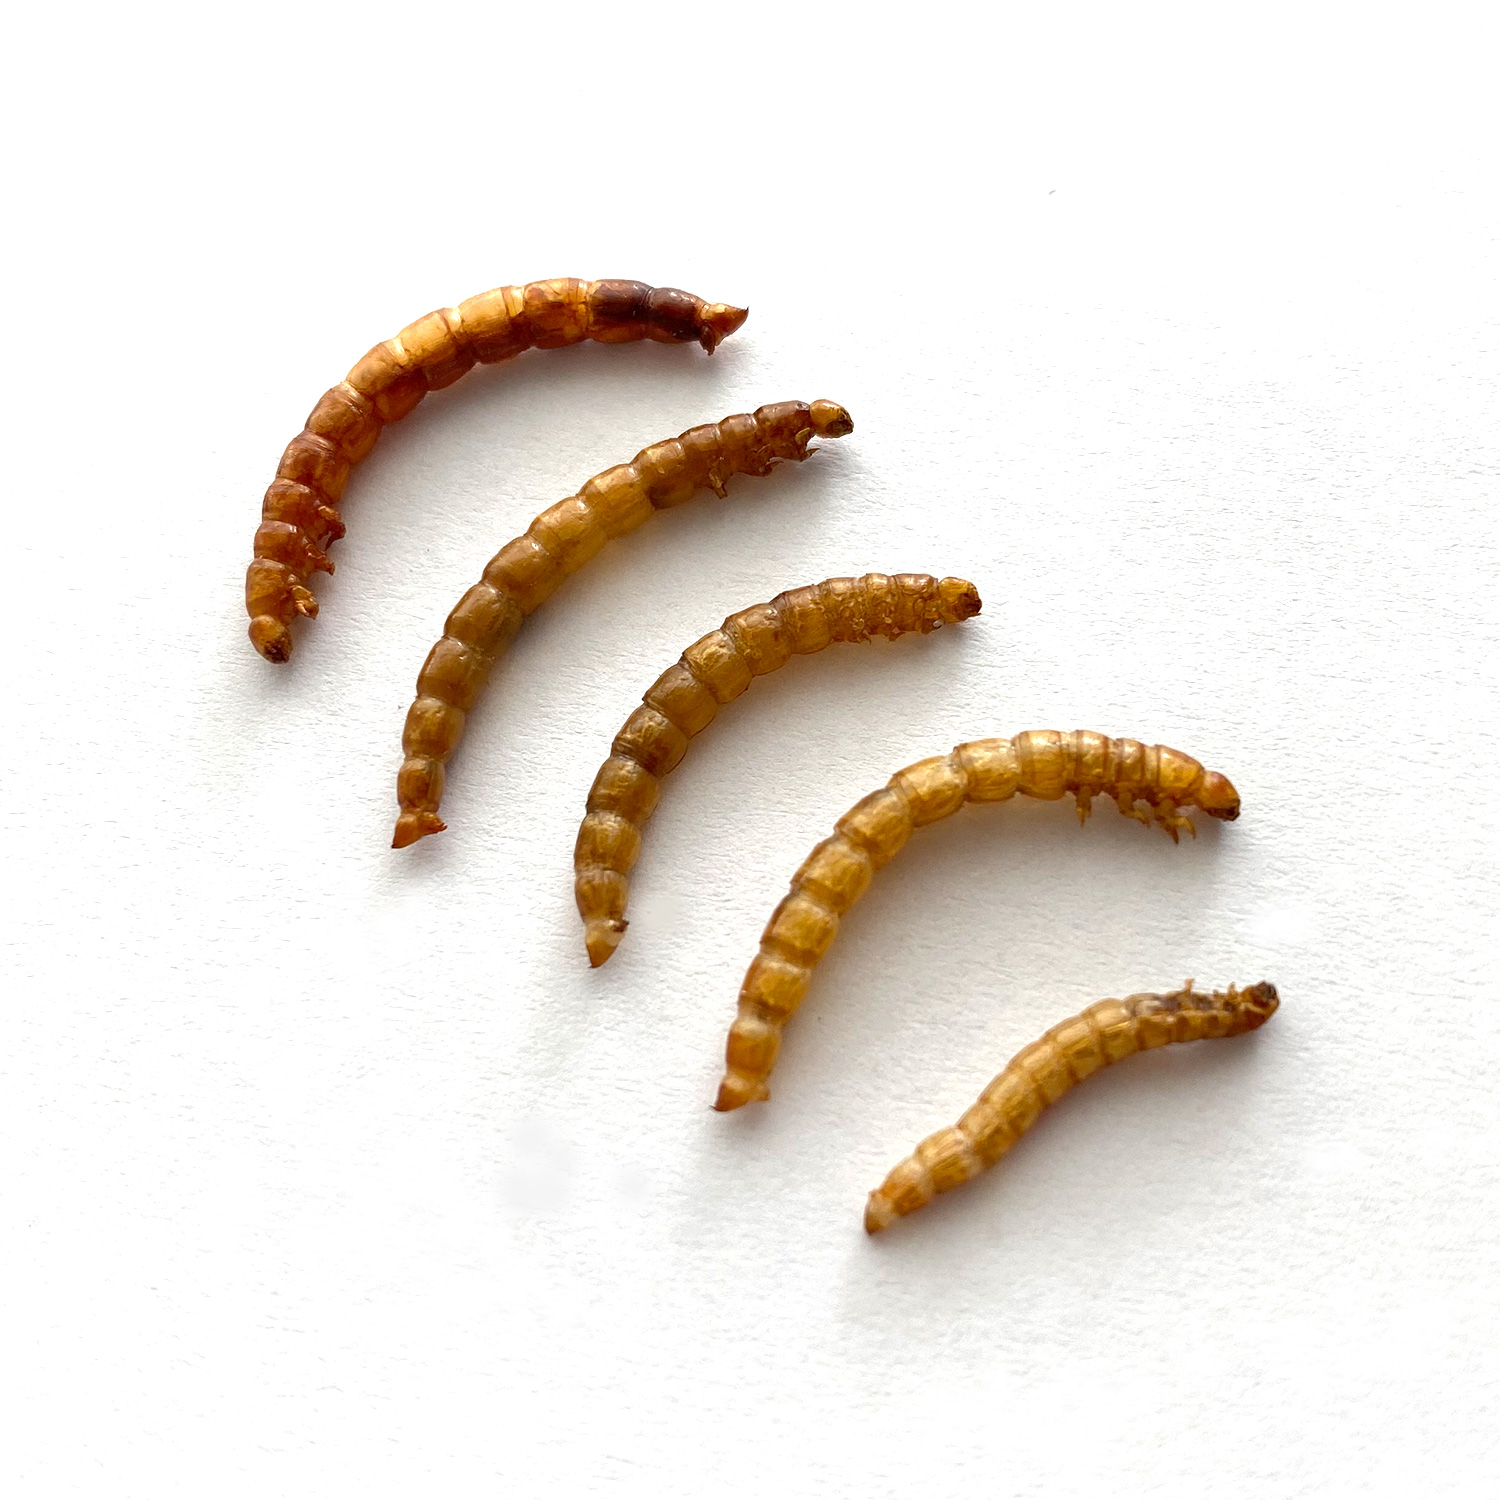 Mealworms10g(ミルワーム10g)x 10袋